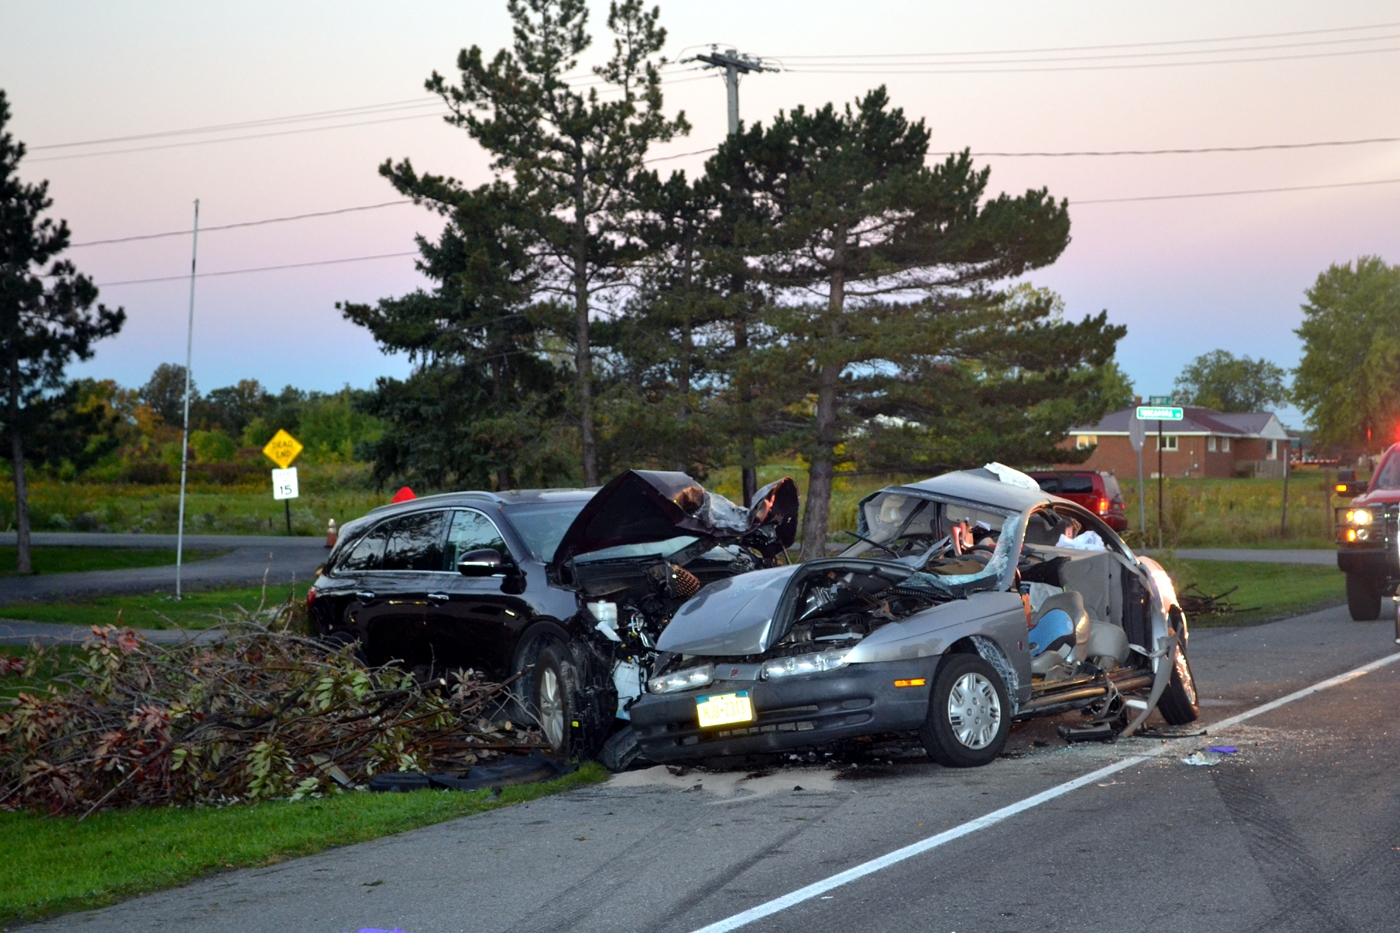 The accident scene at Tuscarora and Lockport roads early Friday. (Larry Kensinger/Special to The News)